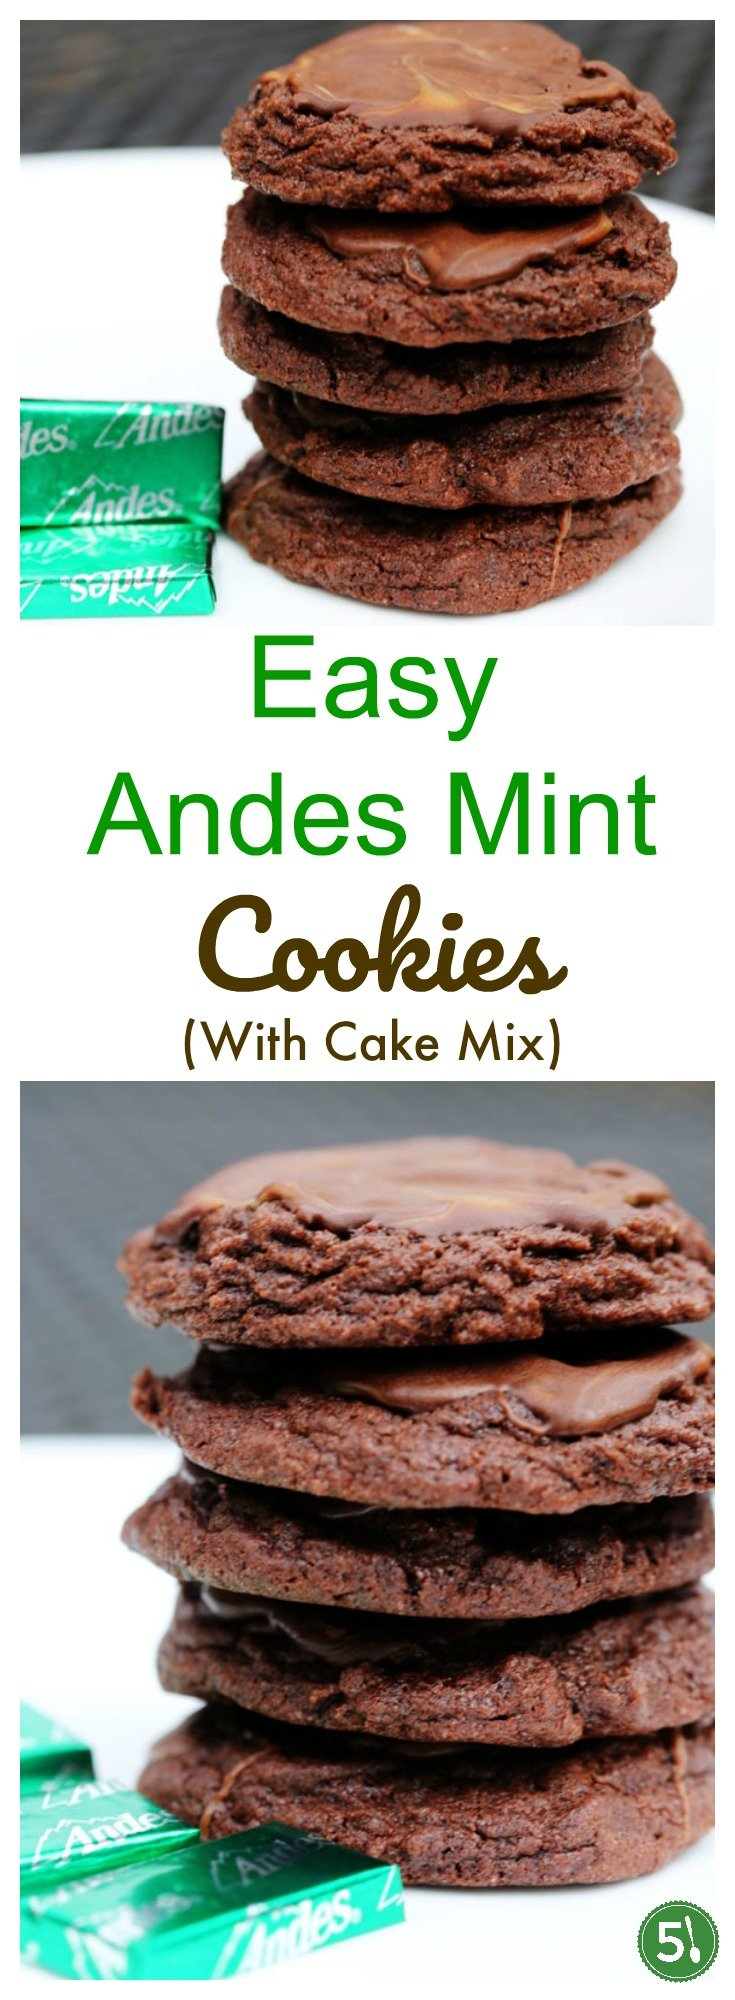 Easy Andes Mint Cookie recipe using cake mix.  Andes Mint chocolates melting on top of a moist chocolate cookie - Yum.